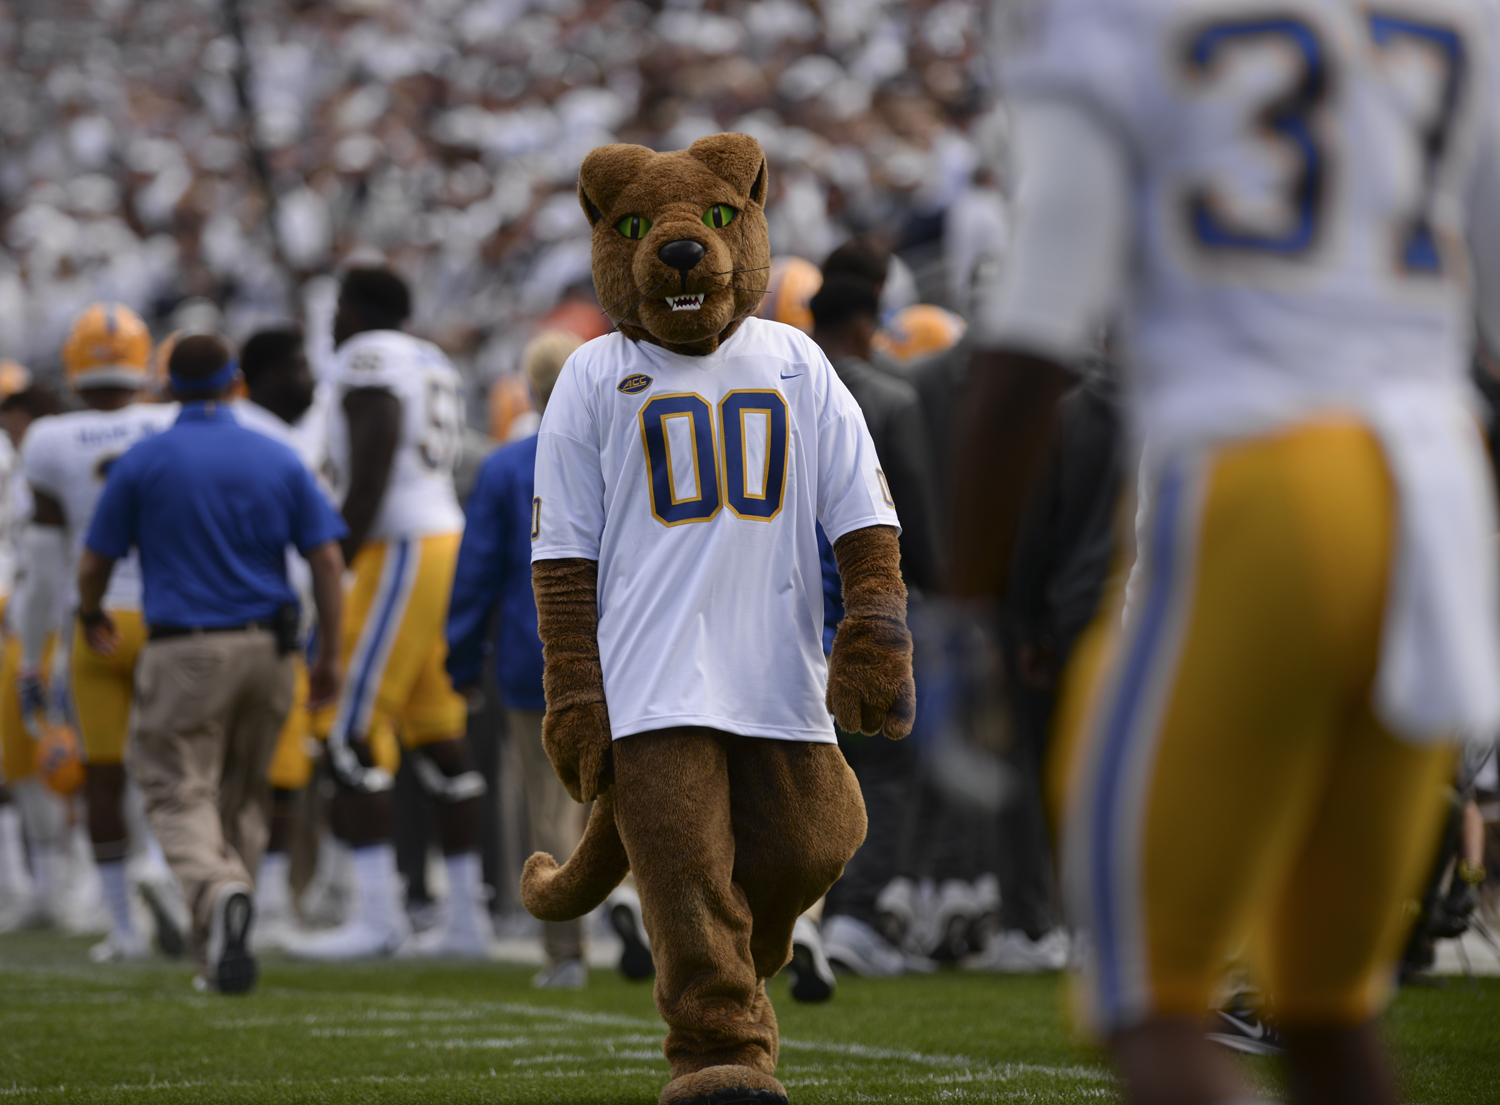 Roc, the Panthers' mascot, walks toward Qadree Ollison during last year's Pitt vs. Penn State game in State College. (Photo by Anna Bongardino | Visual Editor)